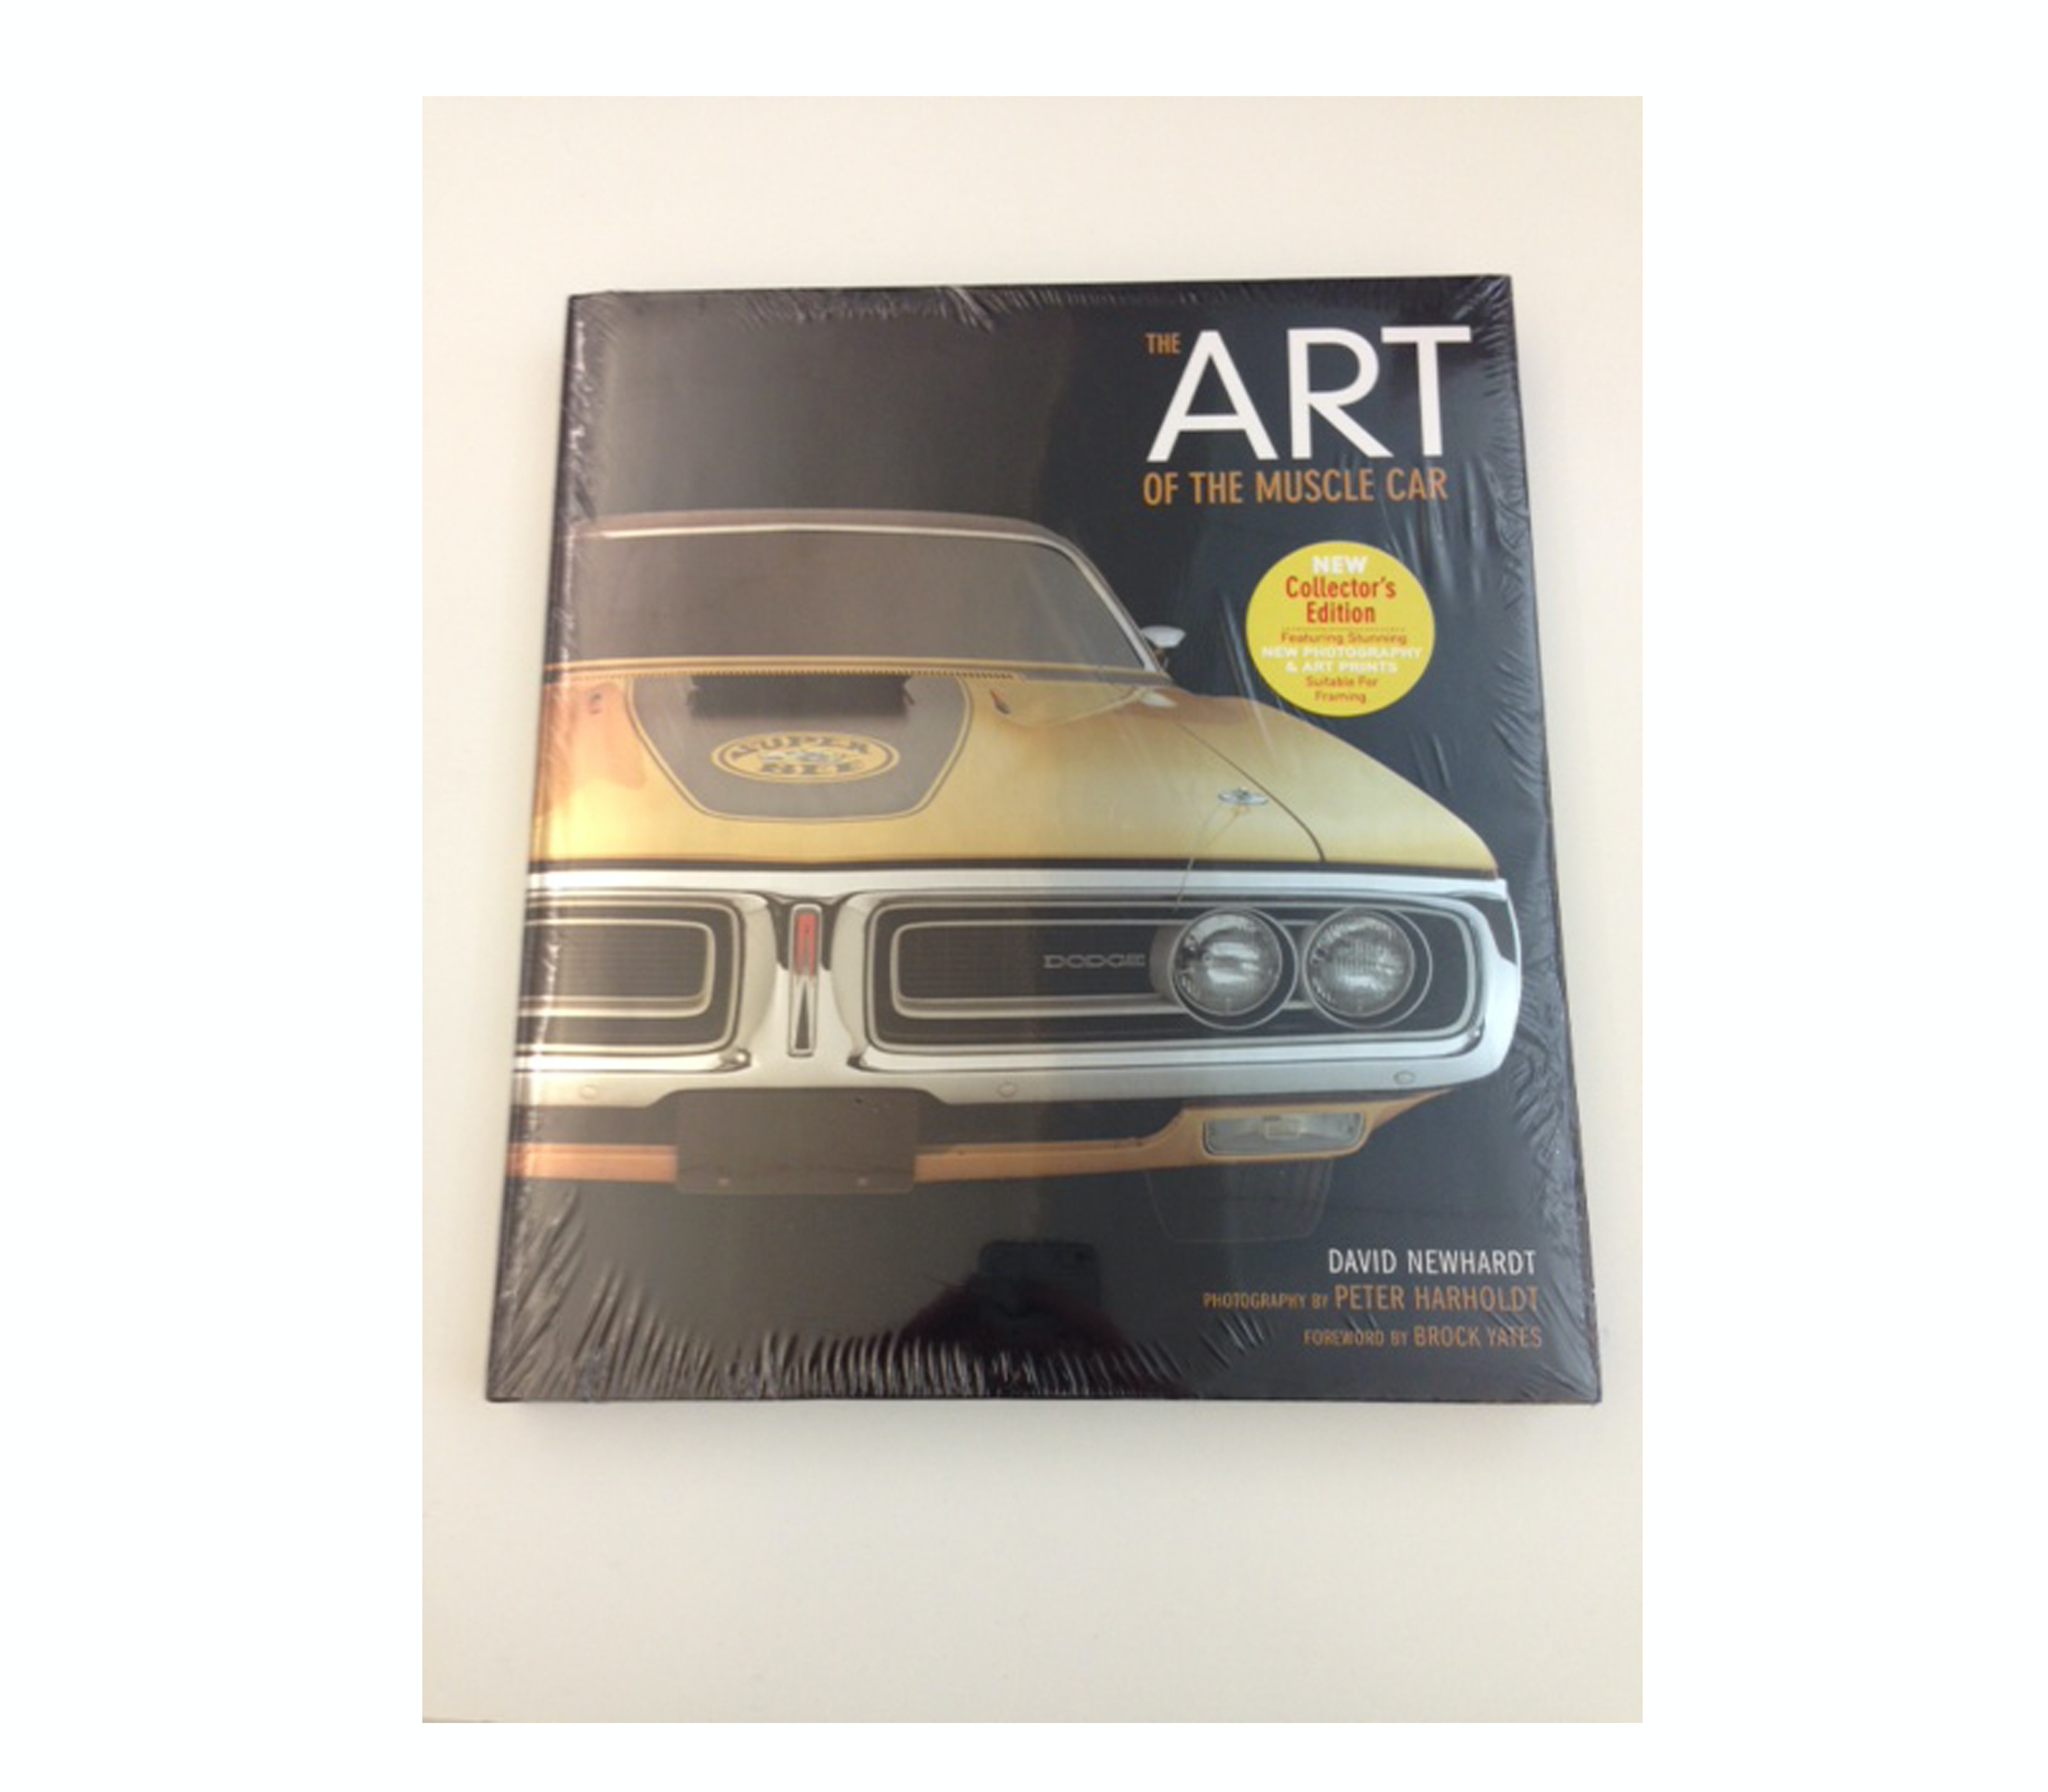 The Art of the Muscle Car by Motorbooks sweepstakes